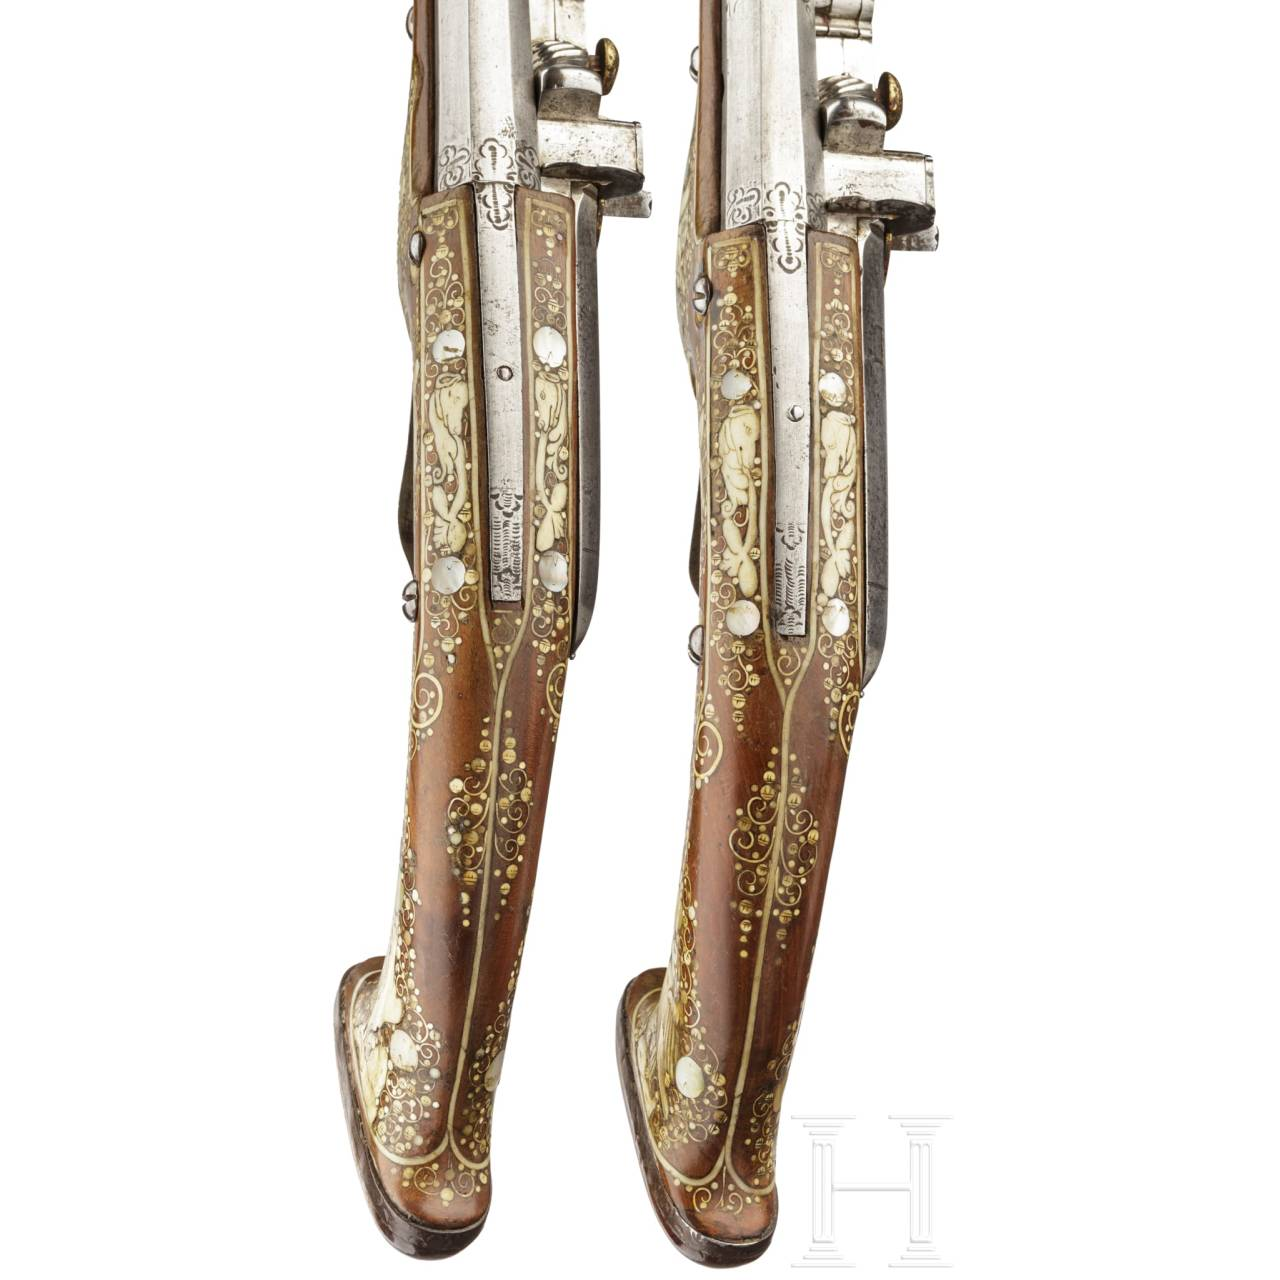 A distinguished pair of Bohemian long deluxe wheellock pistols, circa 1640